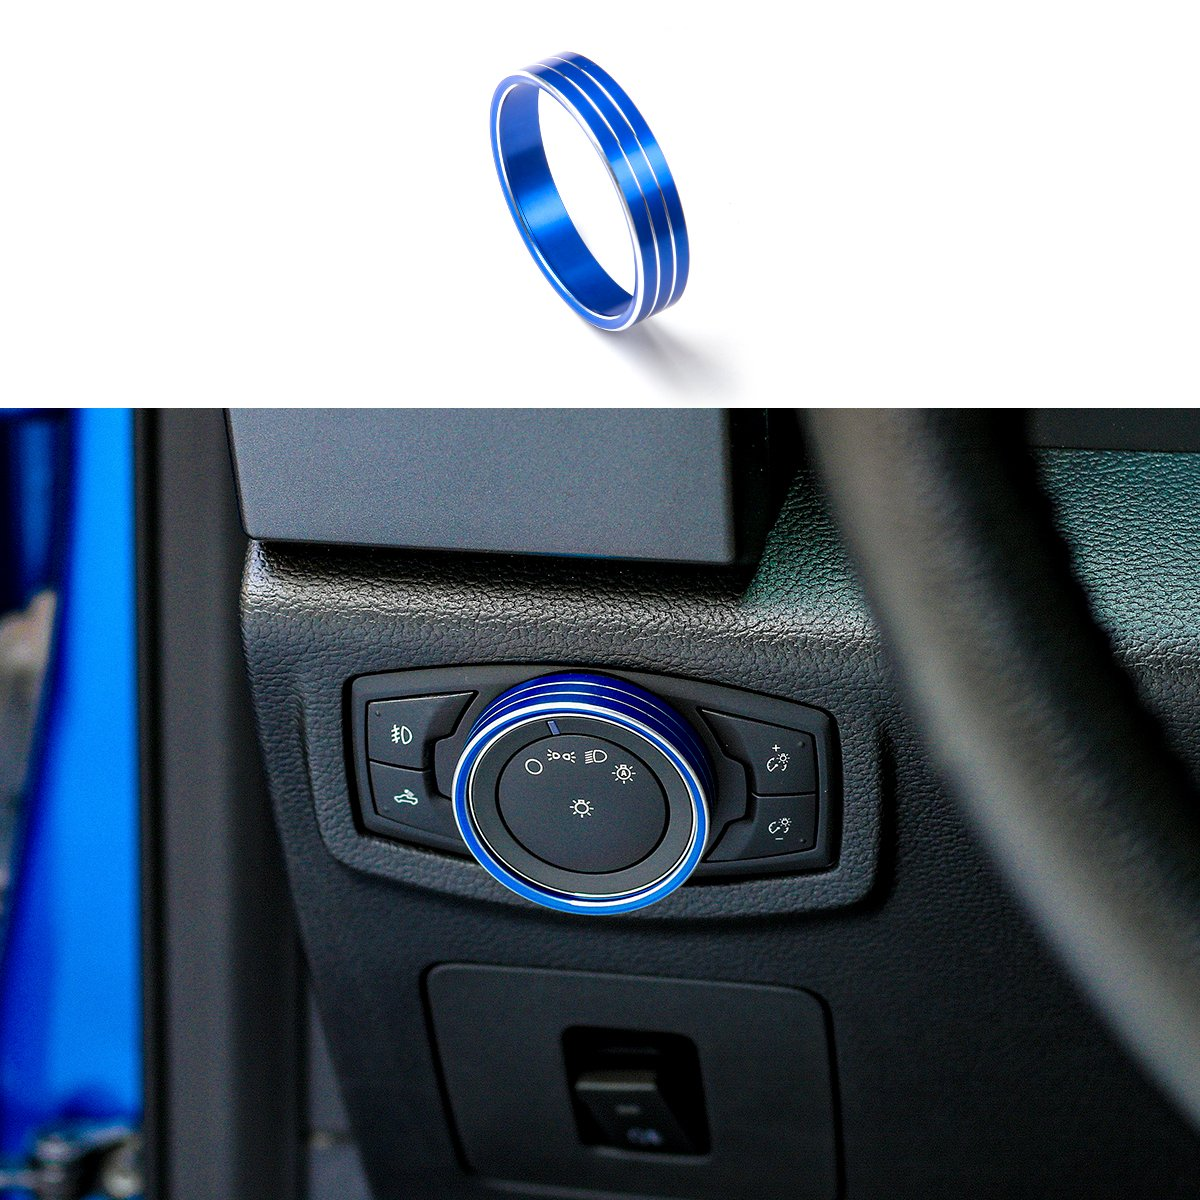 PARBO Aluminium Alloy Headlight Switch Knob Trim Front Headlamp Control Cover for 2015 2016 2017 Ford F150 & Mustang (Blue)